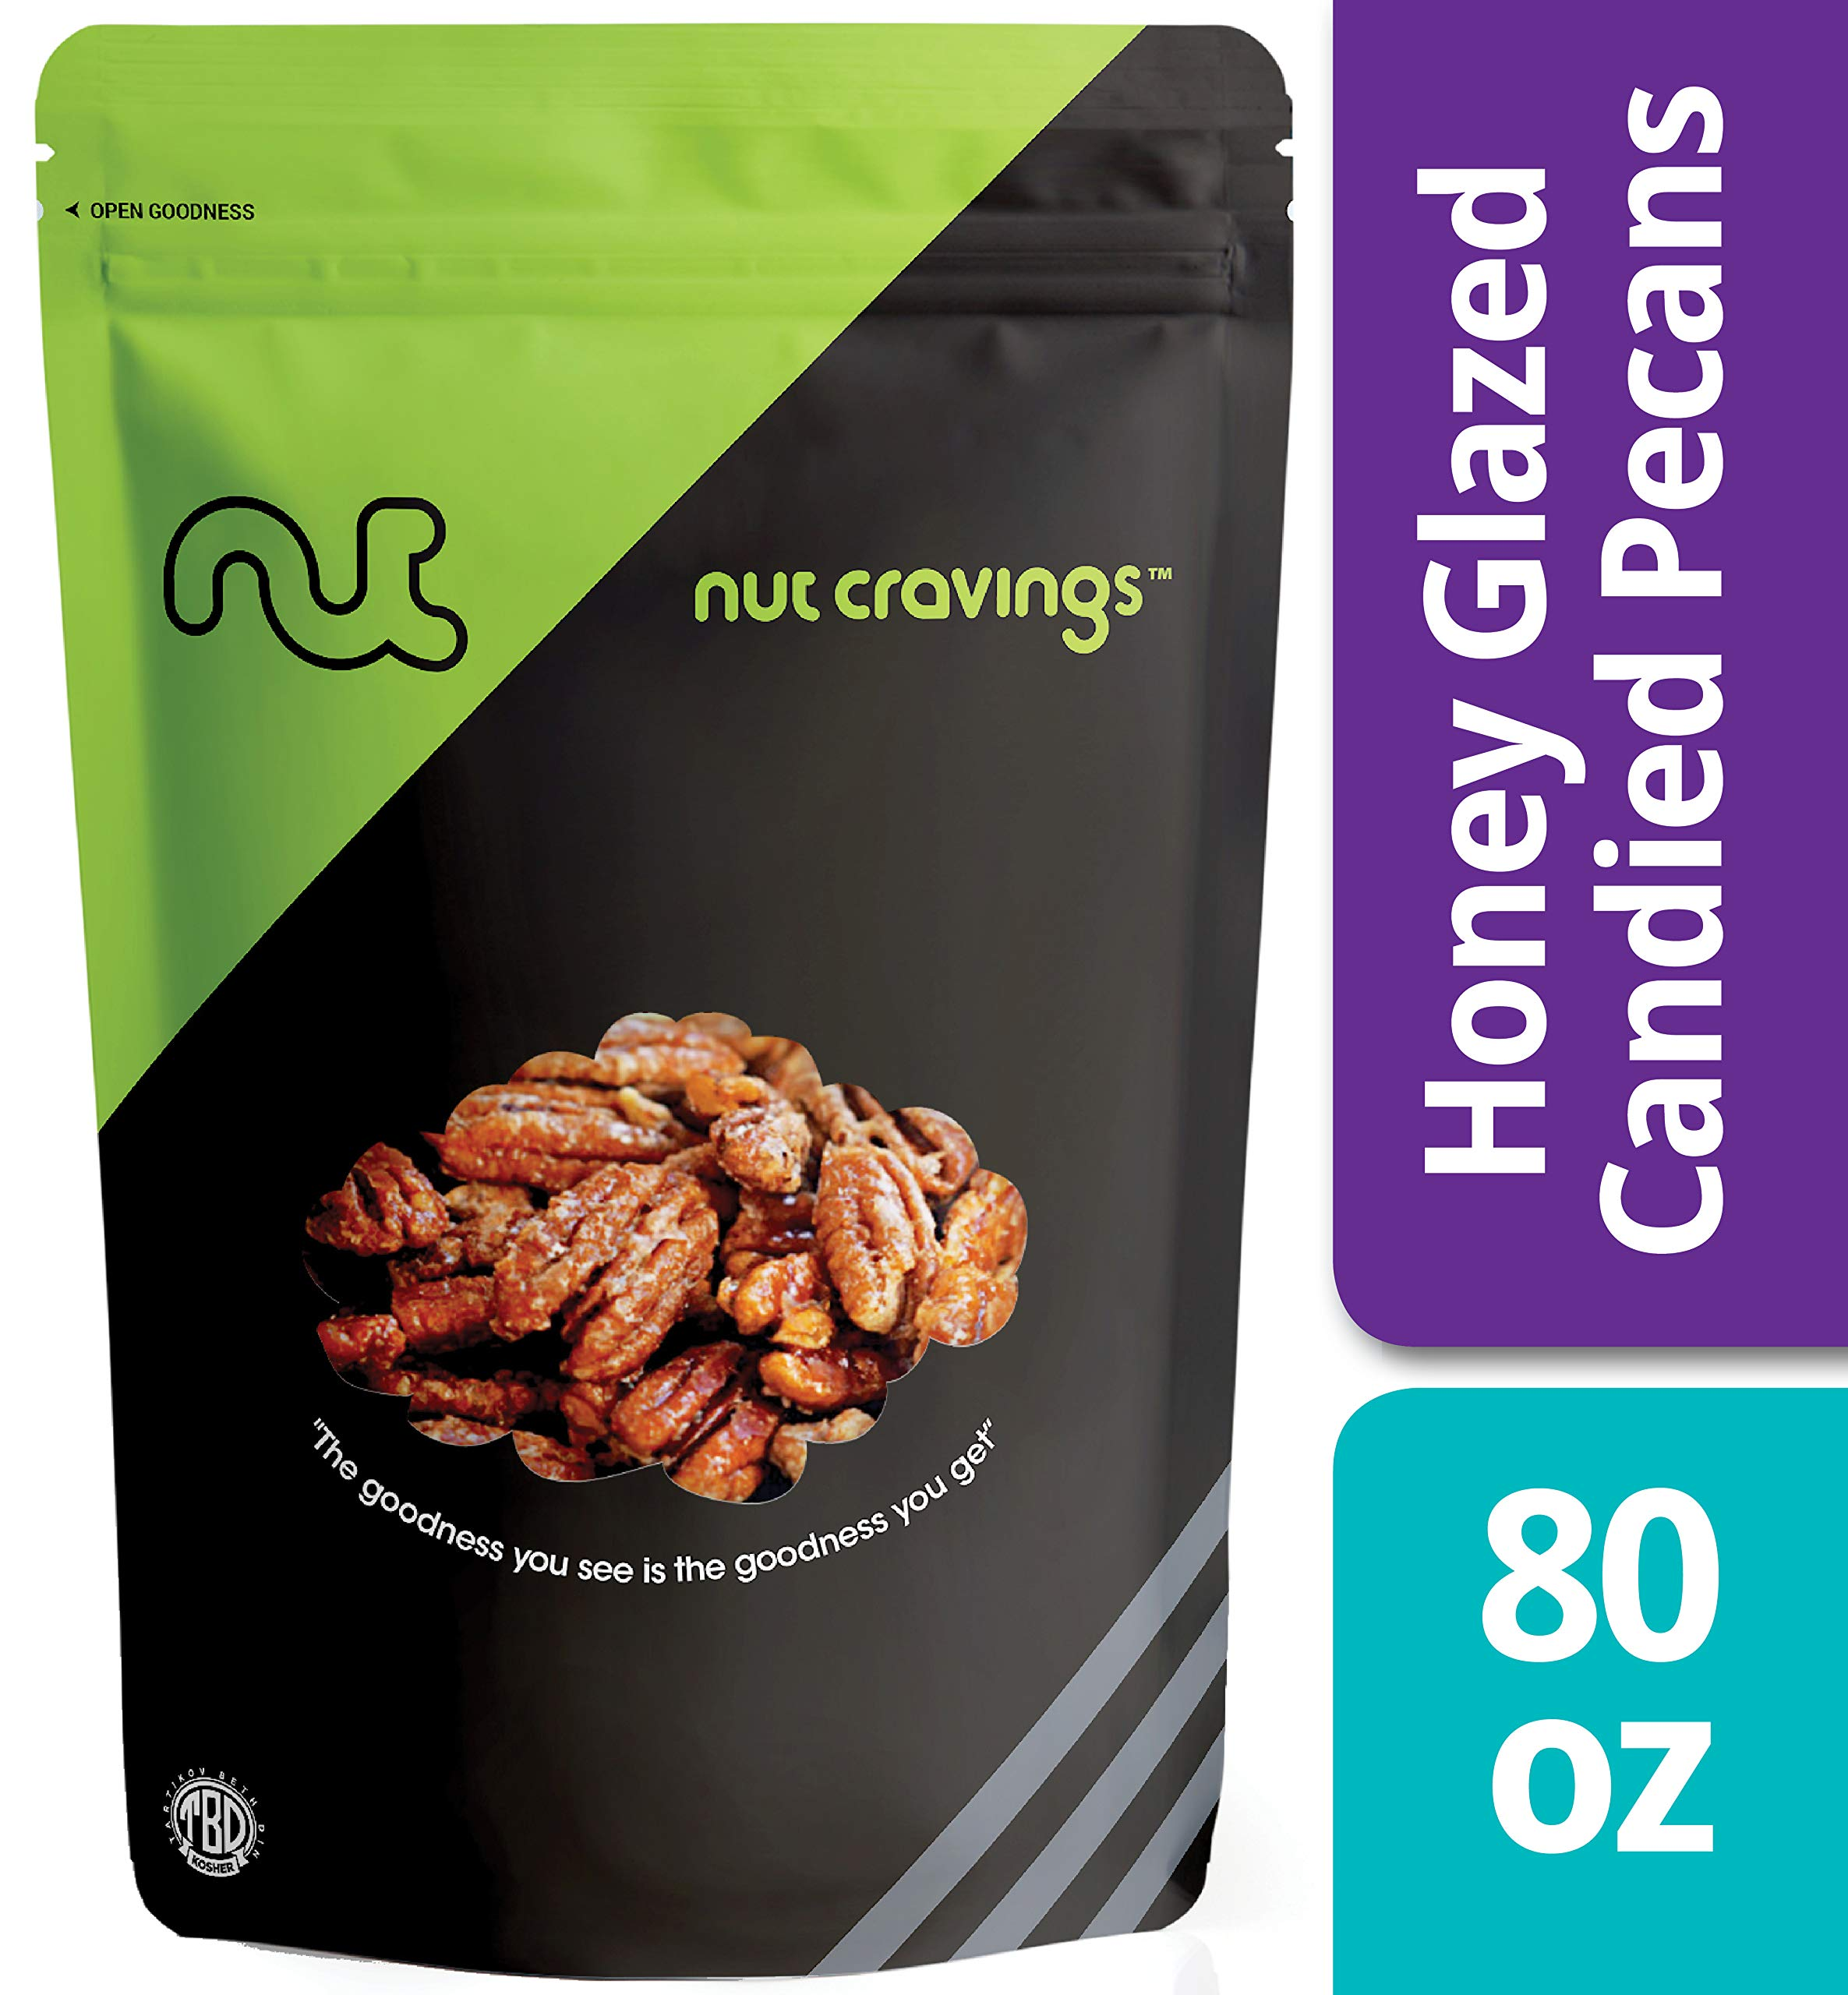 Nut Cravings - Fresh Honey Glazed Candied Pecans (5 Pounds) - In Resealable Bag - 80 Ounce by Nut Cravings